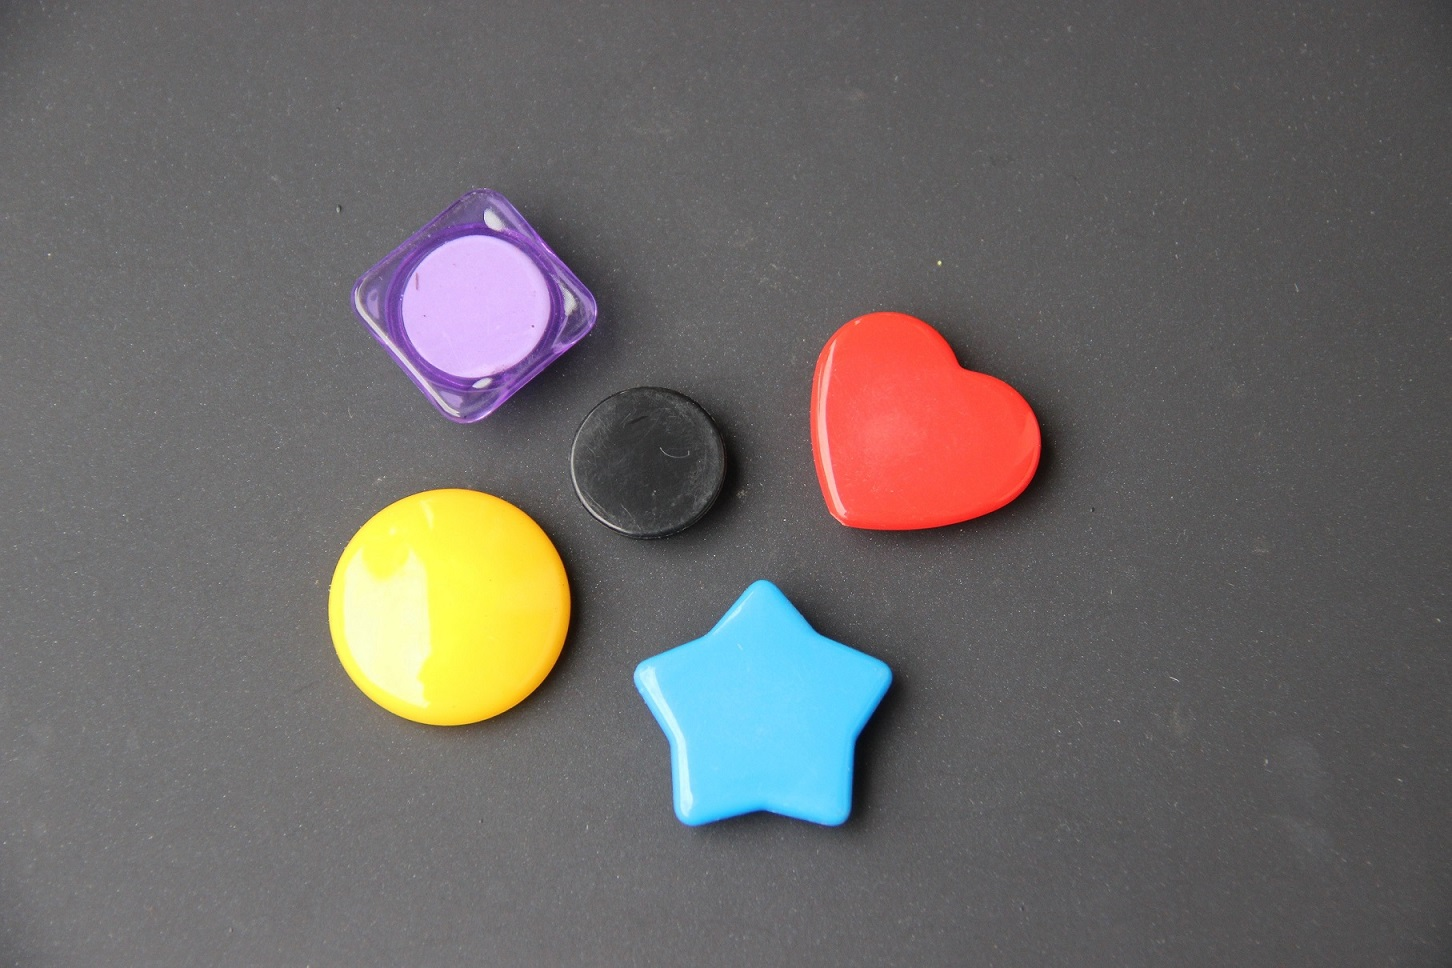 MAGNETIC BUTTON WITH KINDS OF SHAPES